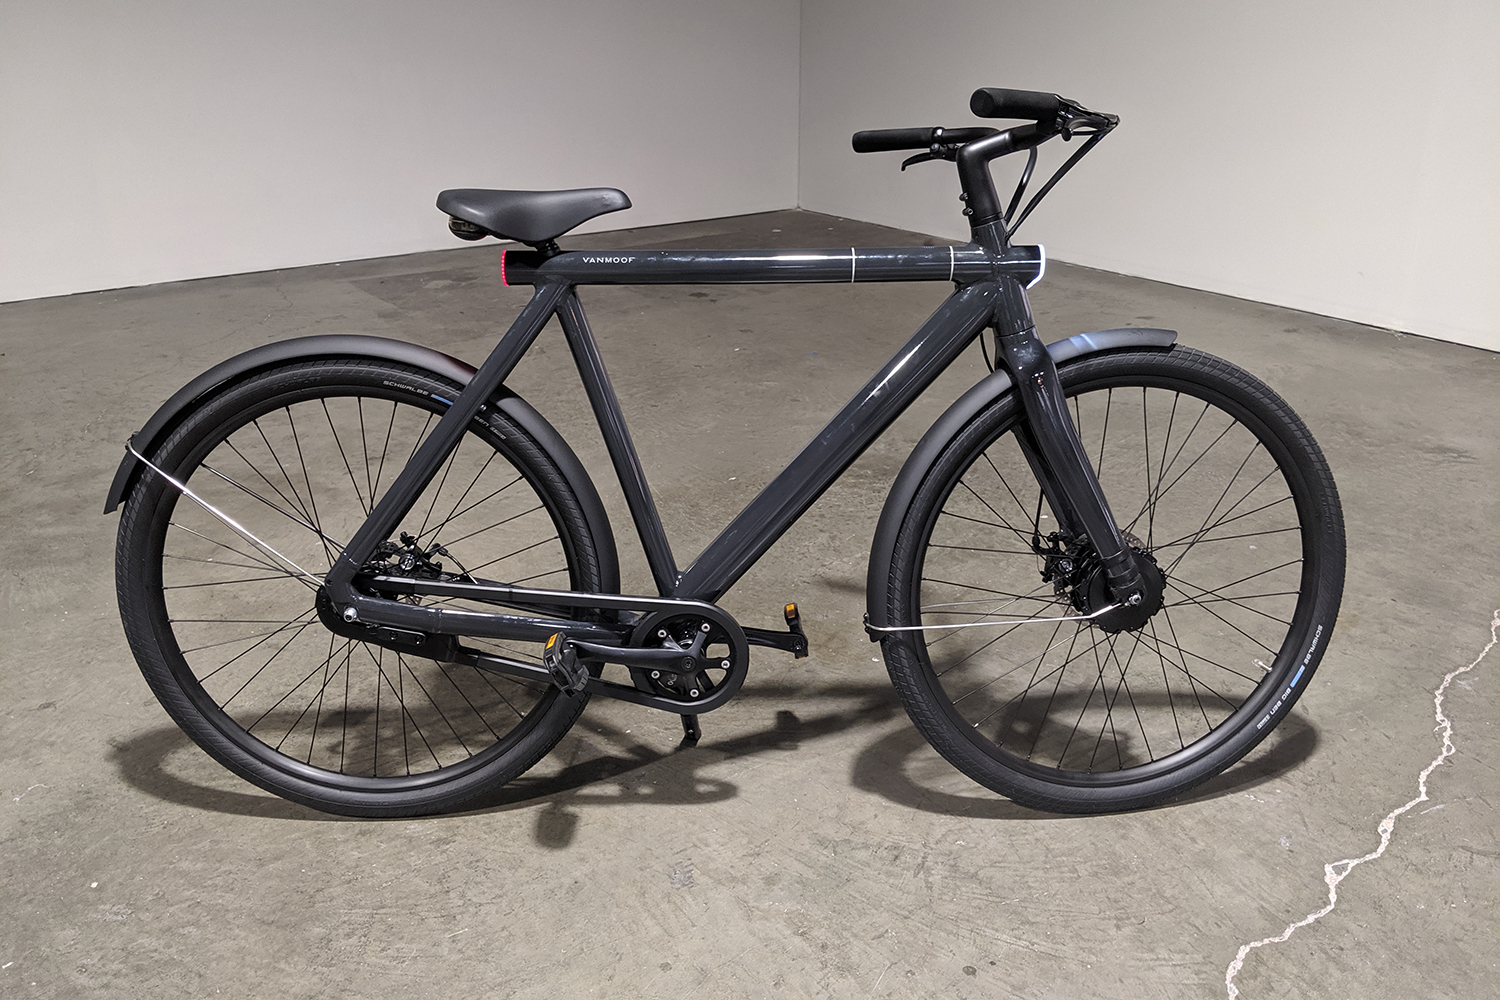 spedizione gratuita 59d4d 75134 We Were Wrong. The VanMoof S2 Ebike Isn't That Easy to Steal ...